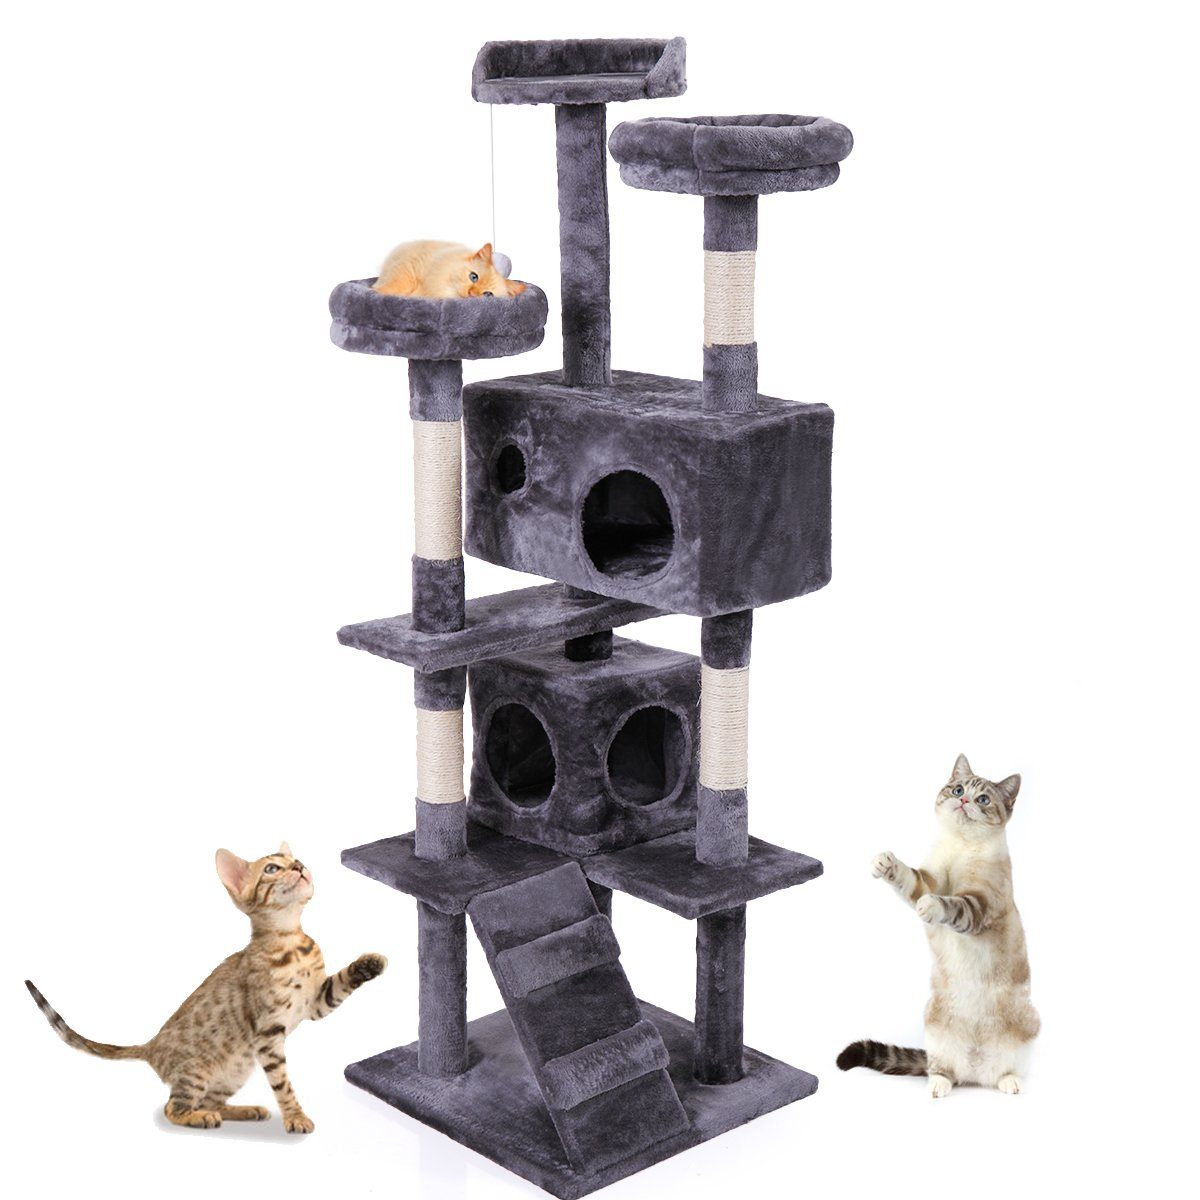 JAXPETY 60'' Cat Tree Condo Furniture Scratching Post Kitten Pet Play Toy House Bed Gray